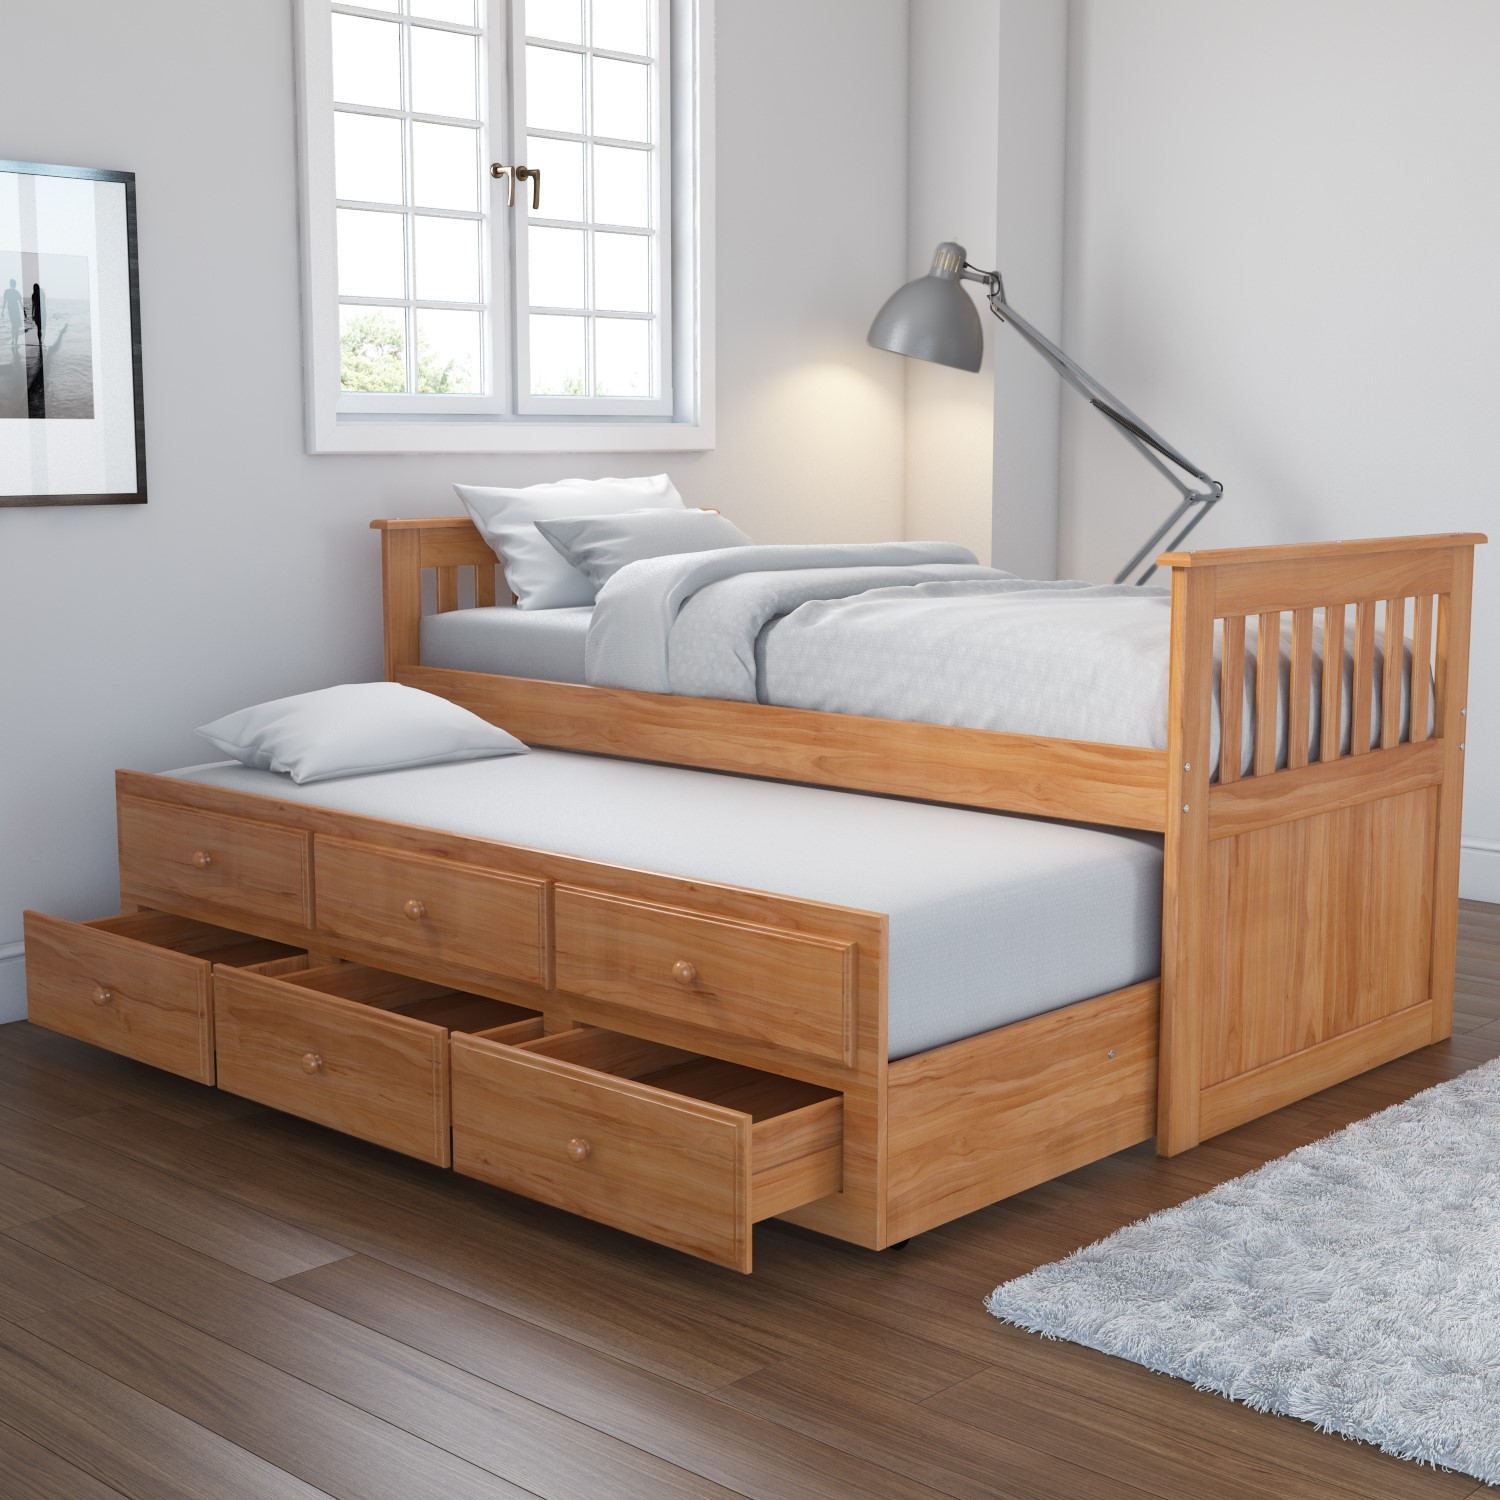 Oxford Captains Guest Bed With Storage In Pine Trundle Bed Included Furniture123